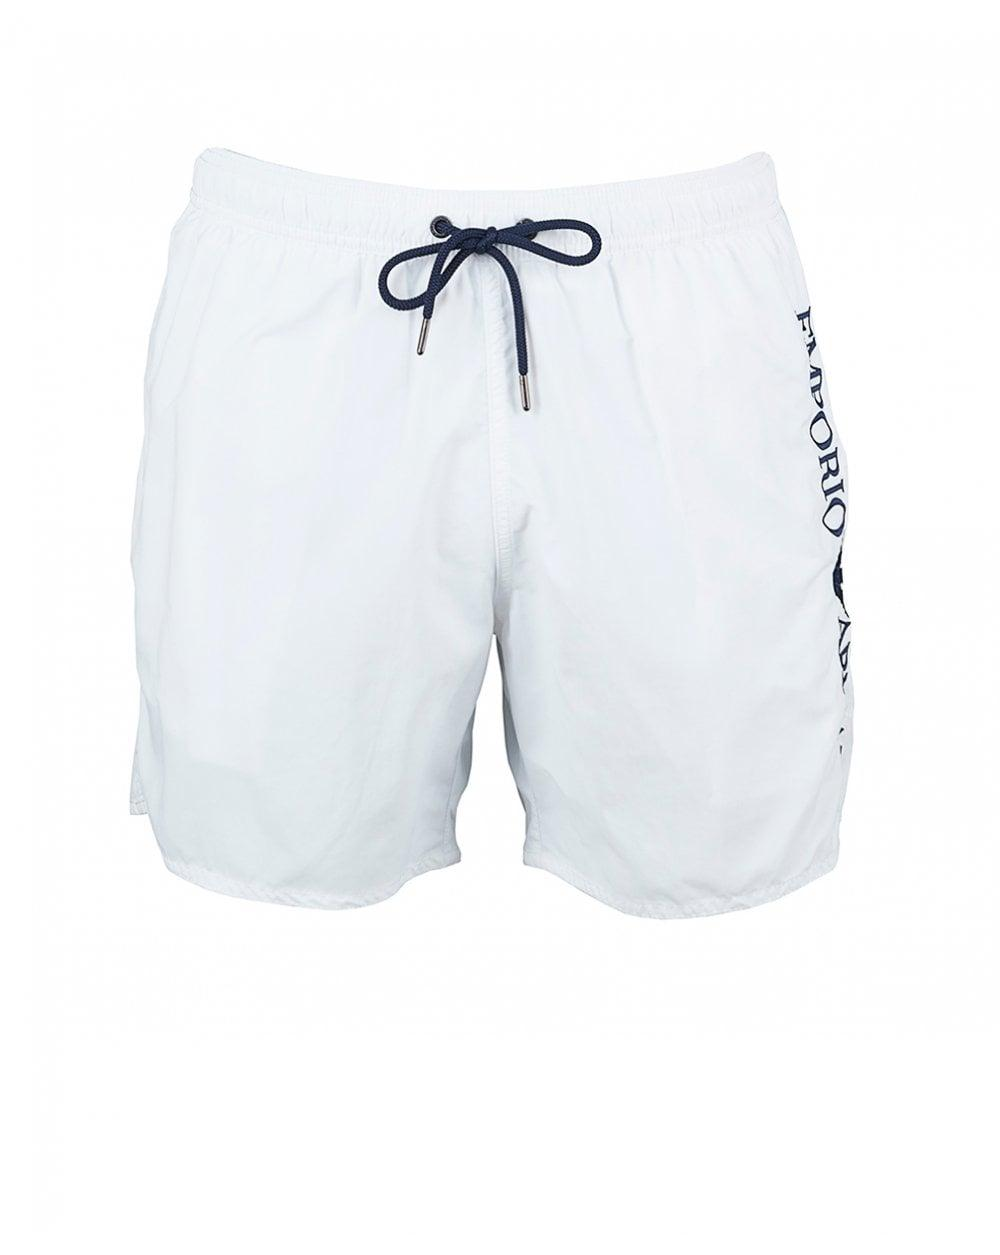 313599c996 Lyst - Emporio Armani Embossed Script Logo Swim Shorts in White for Men